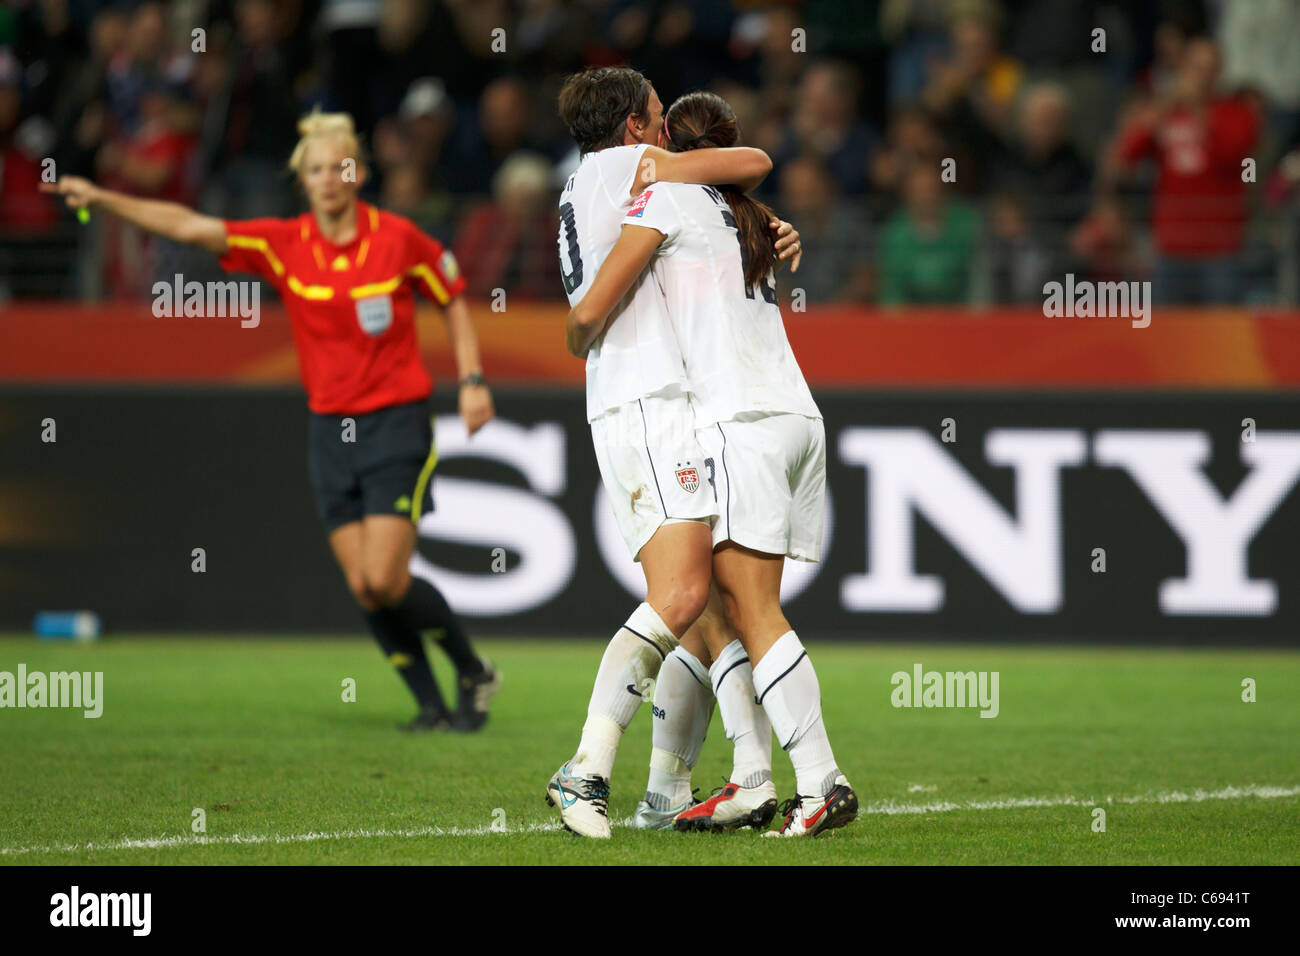 Abby Wambach (l) and Alex Morgan (r) celebrate after Morgan's goal against Japan in the 2011 Women's World - Stock Image